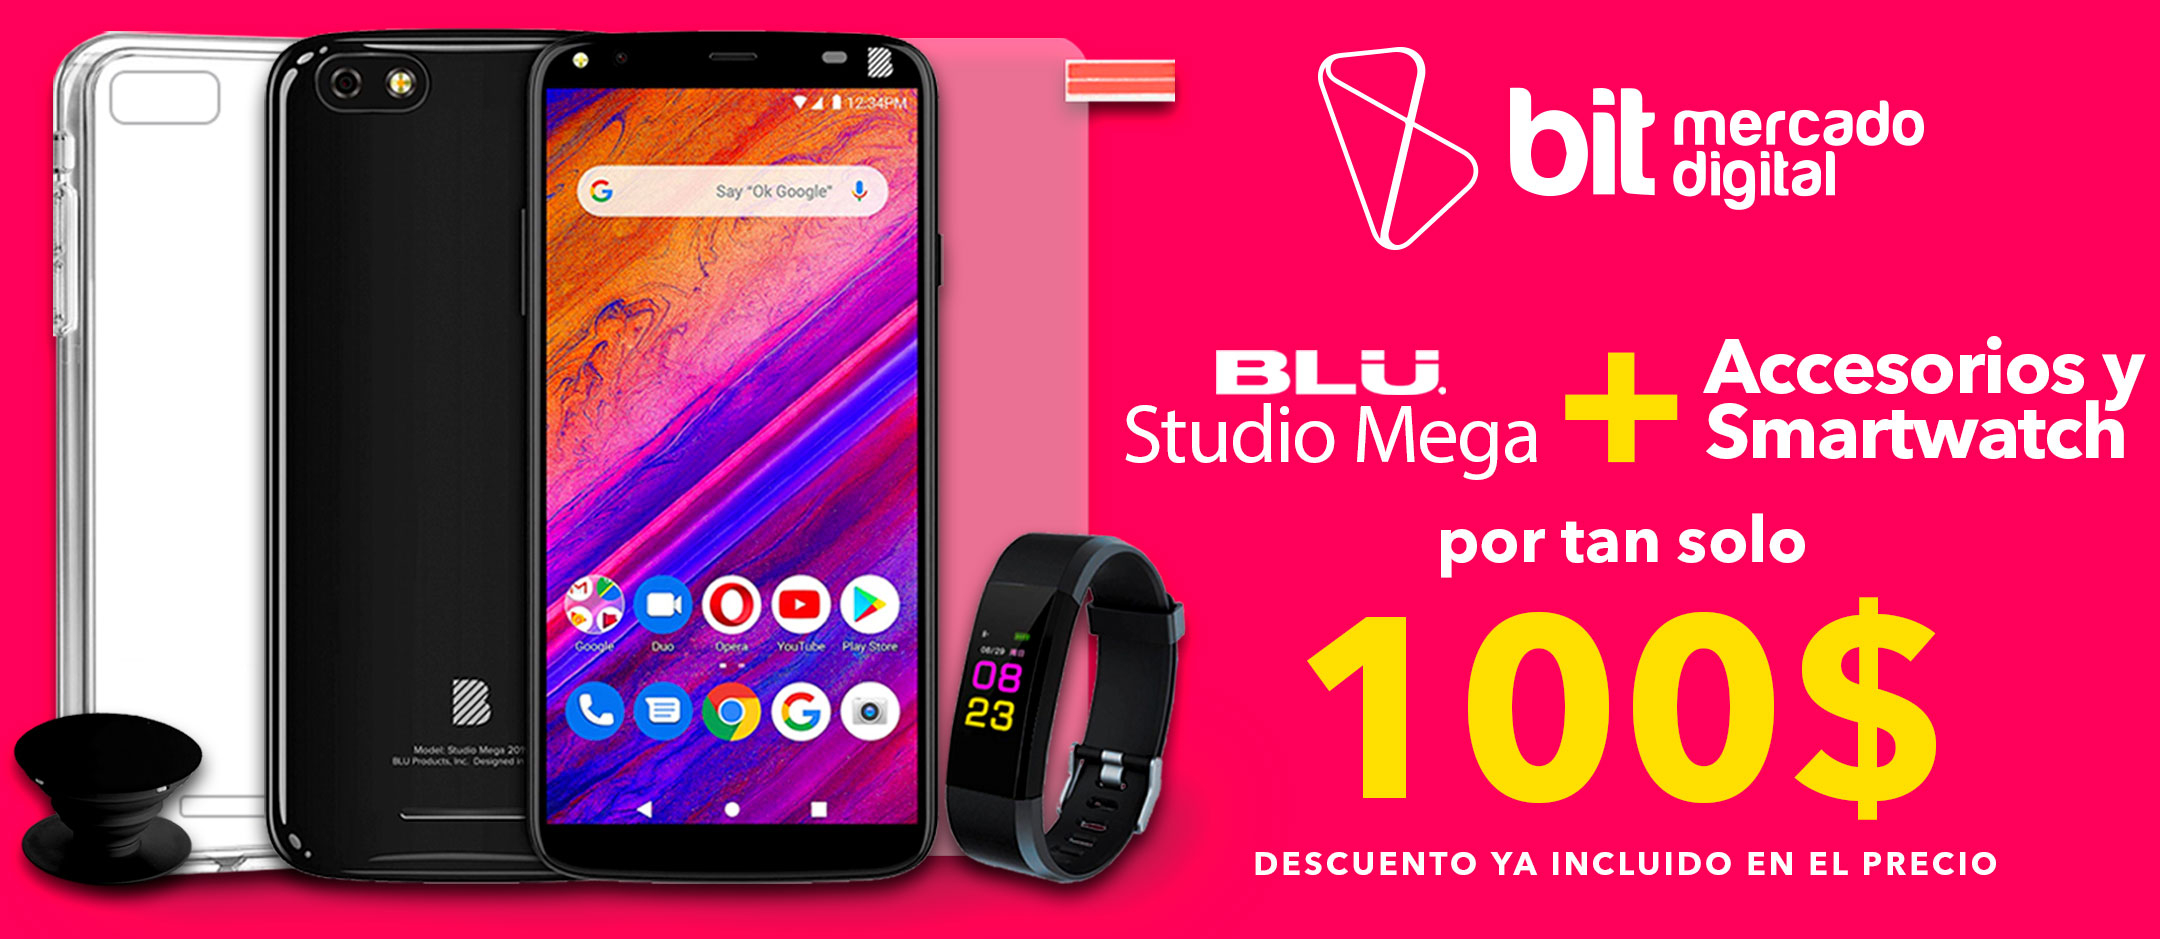 Promo - Bit Mercado Digital